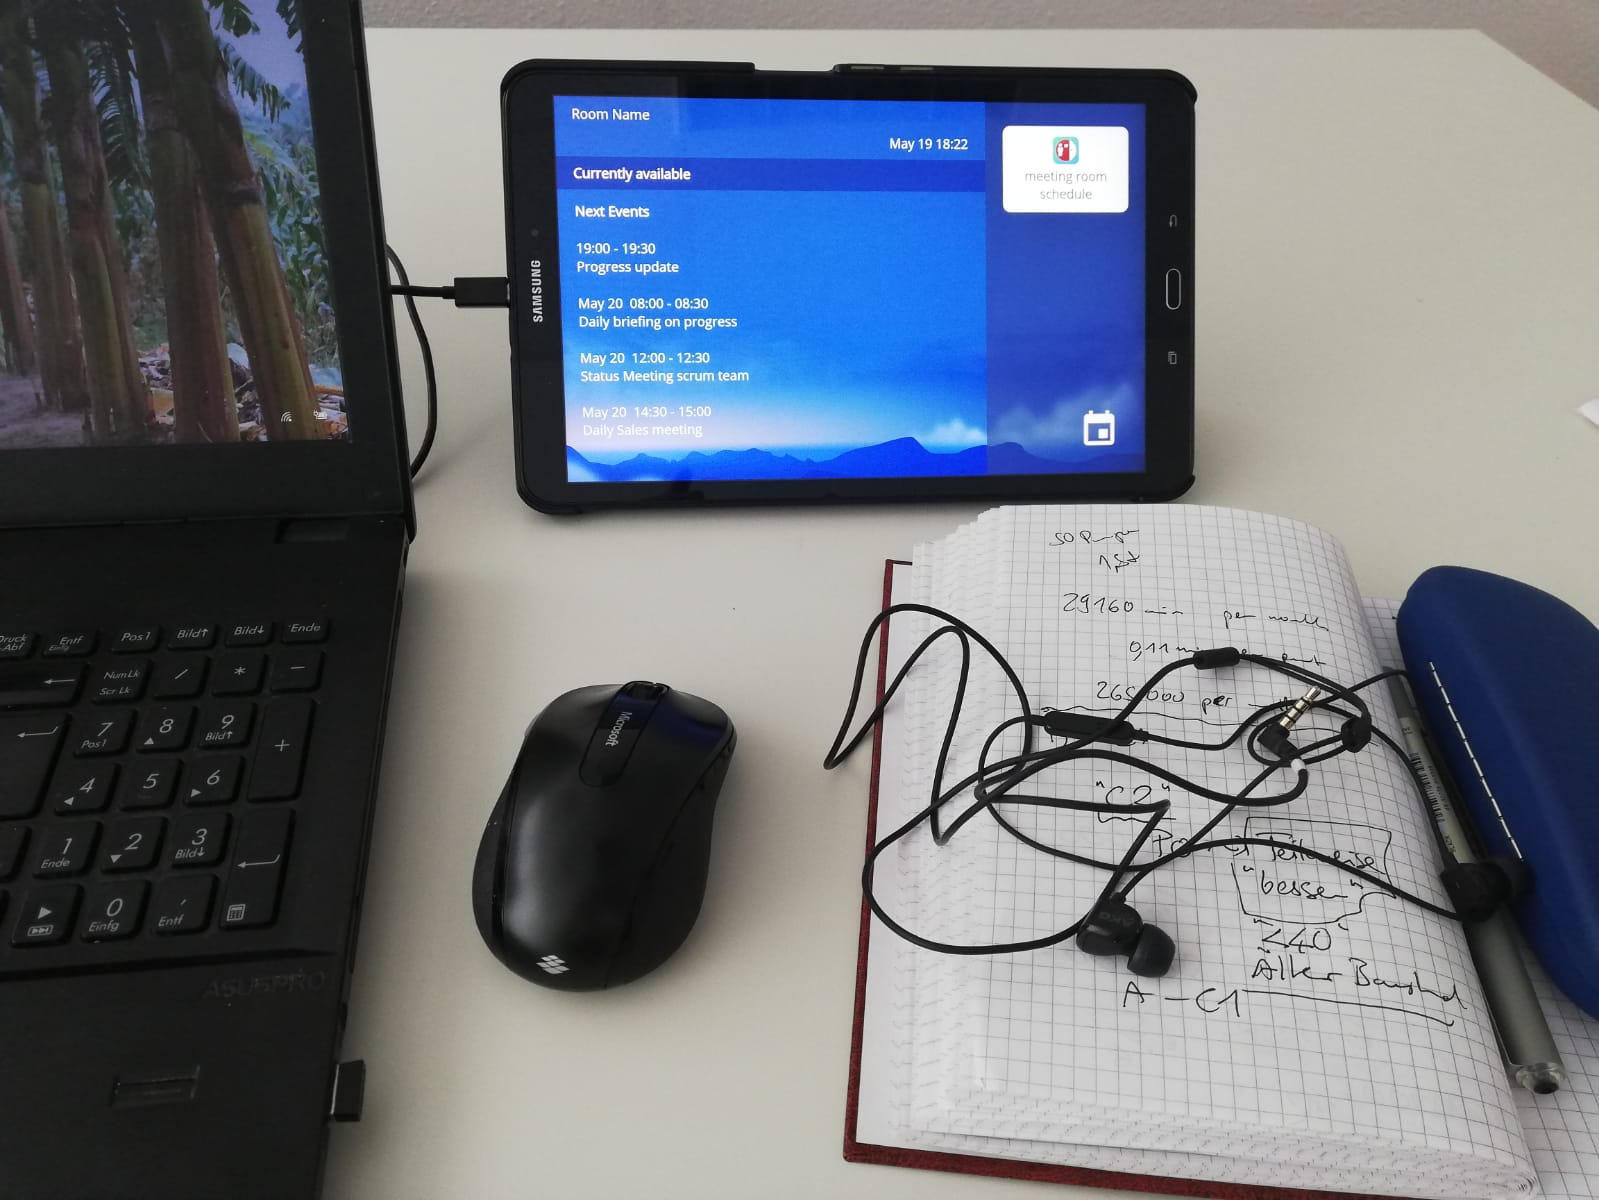 Tablet and Notebook on desk